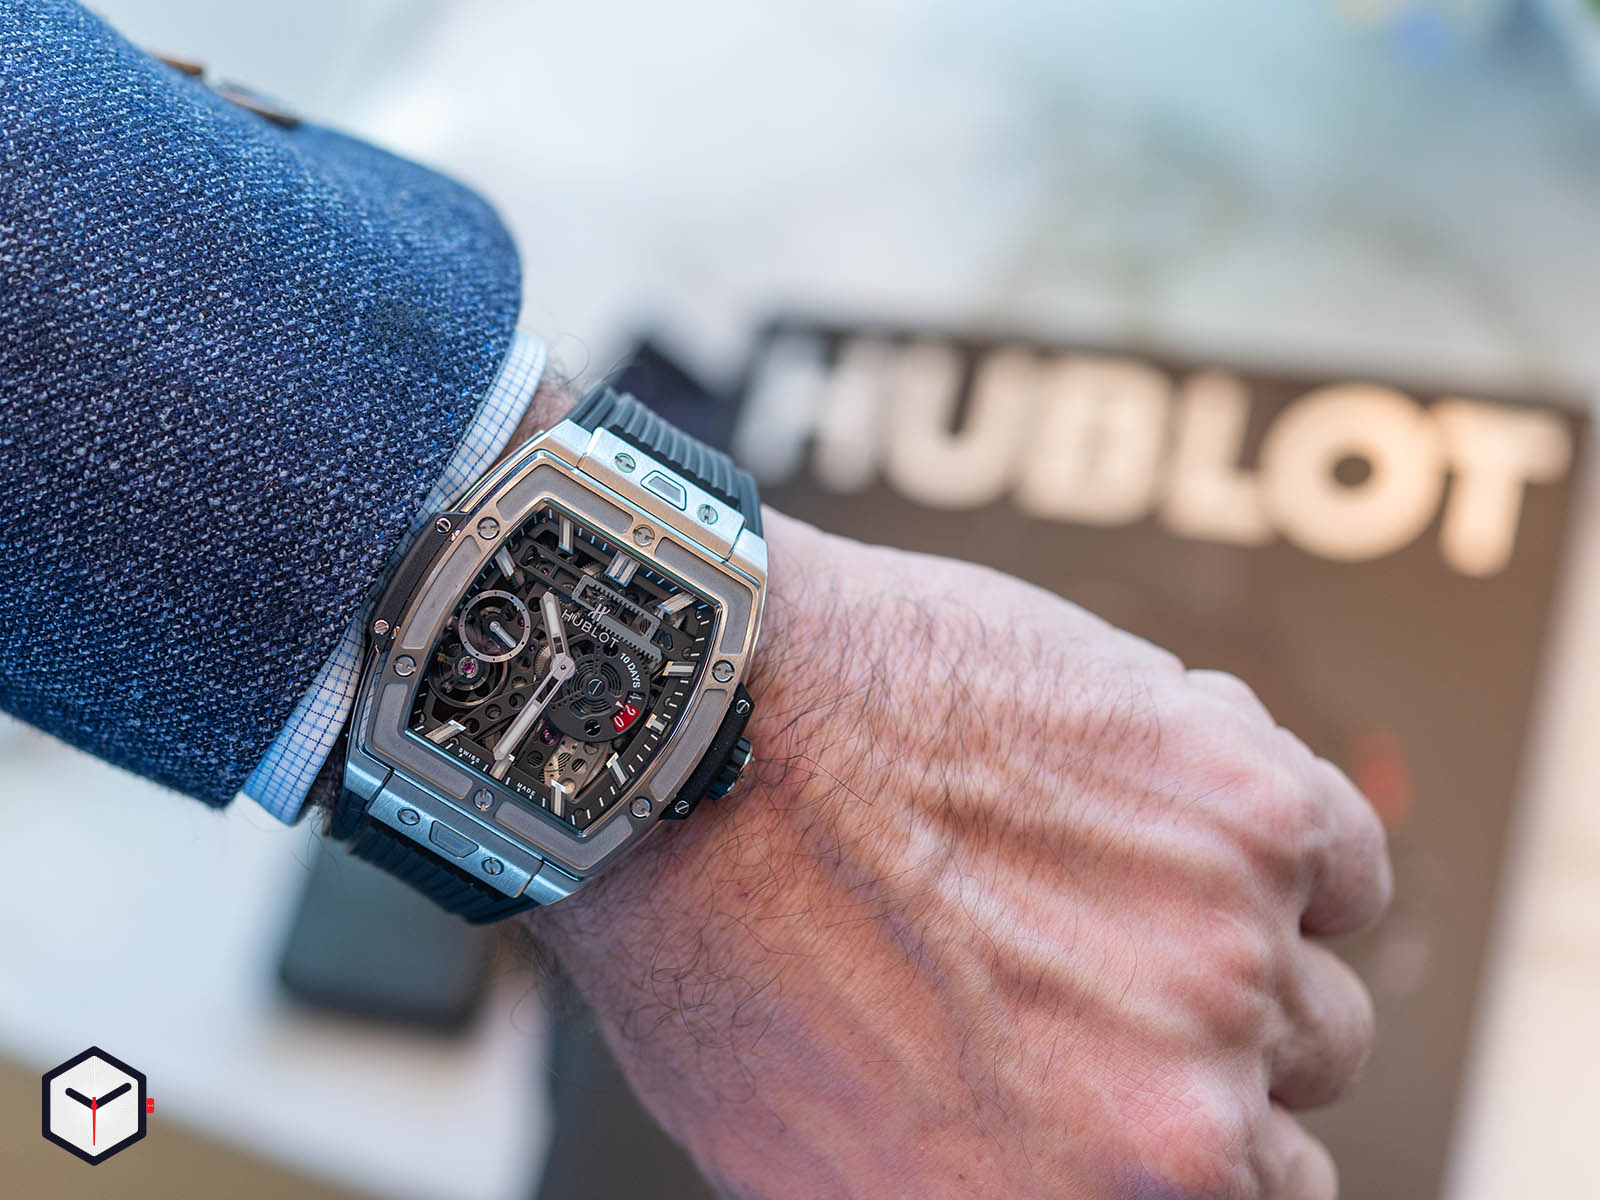 hublot-spirit-of-big-bang-meca-10-7.jpg